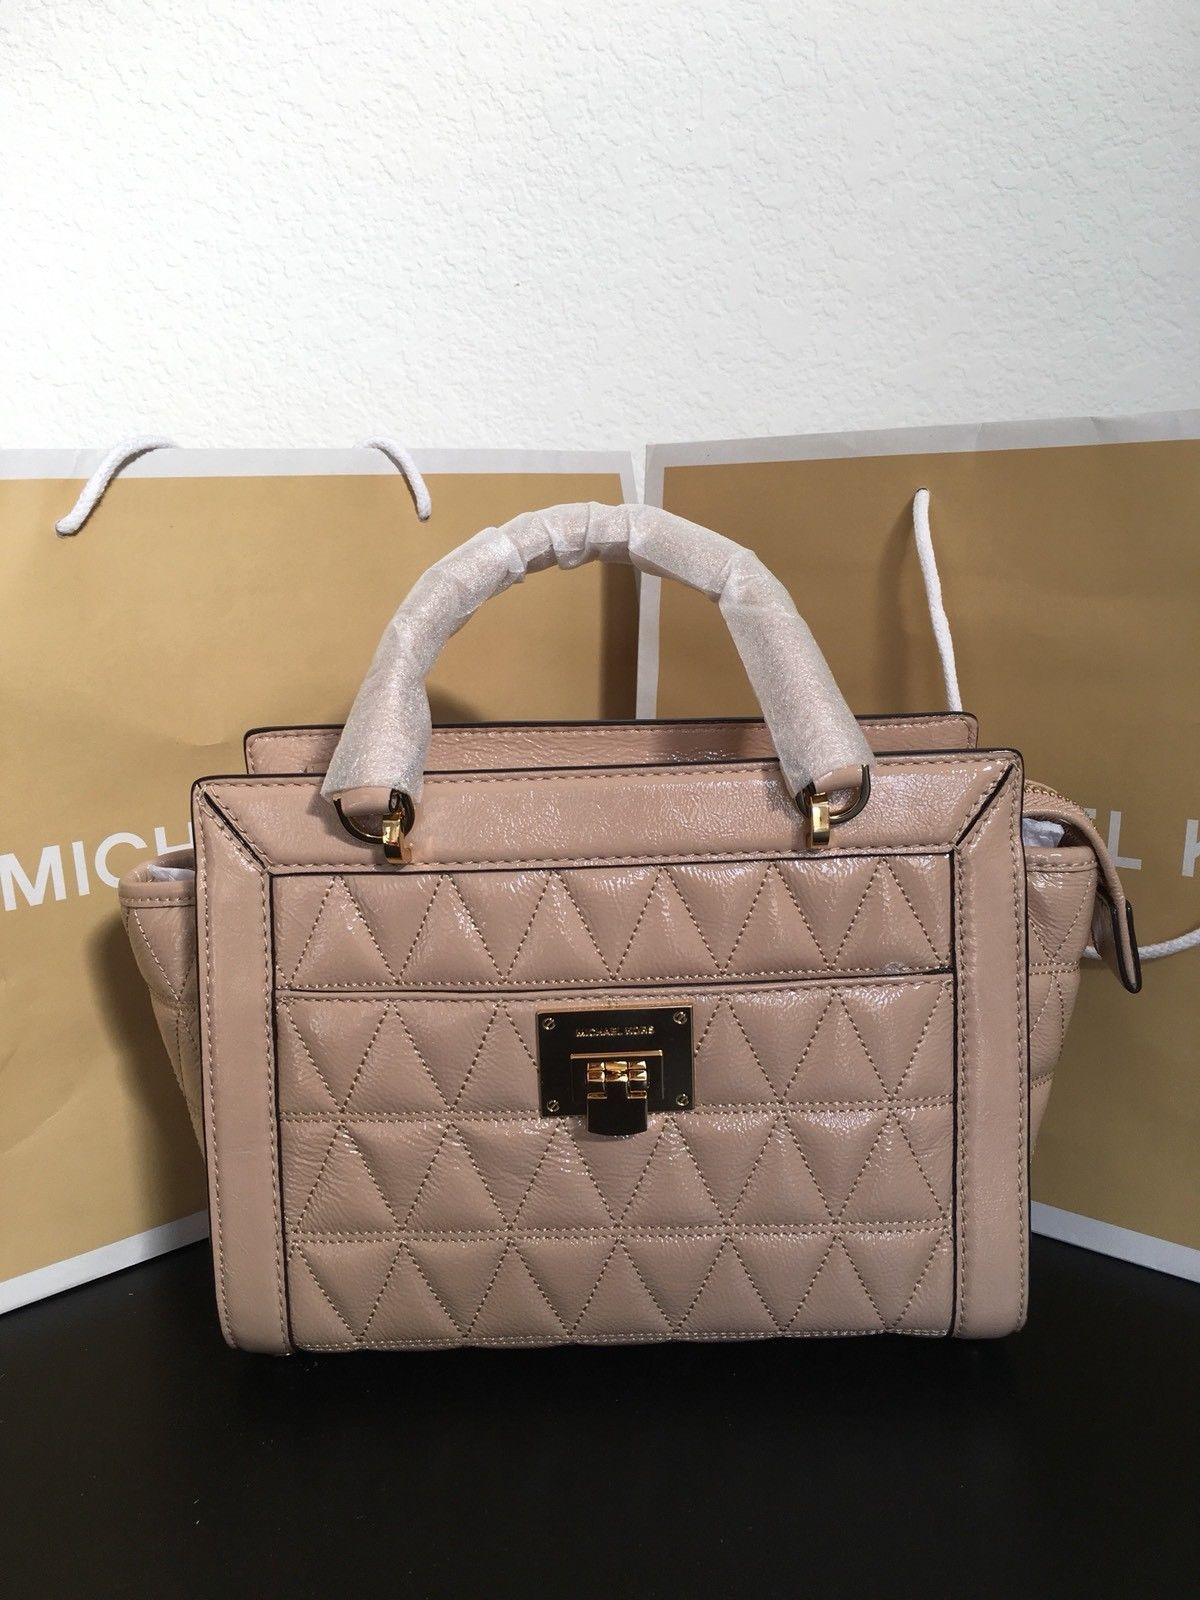 ad1e60ed52 S l1600. S l1600. NWT Michael Kors VIVIANNE Quilted SM TZ Patent Leather Messenger  Bag OYSTER  348